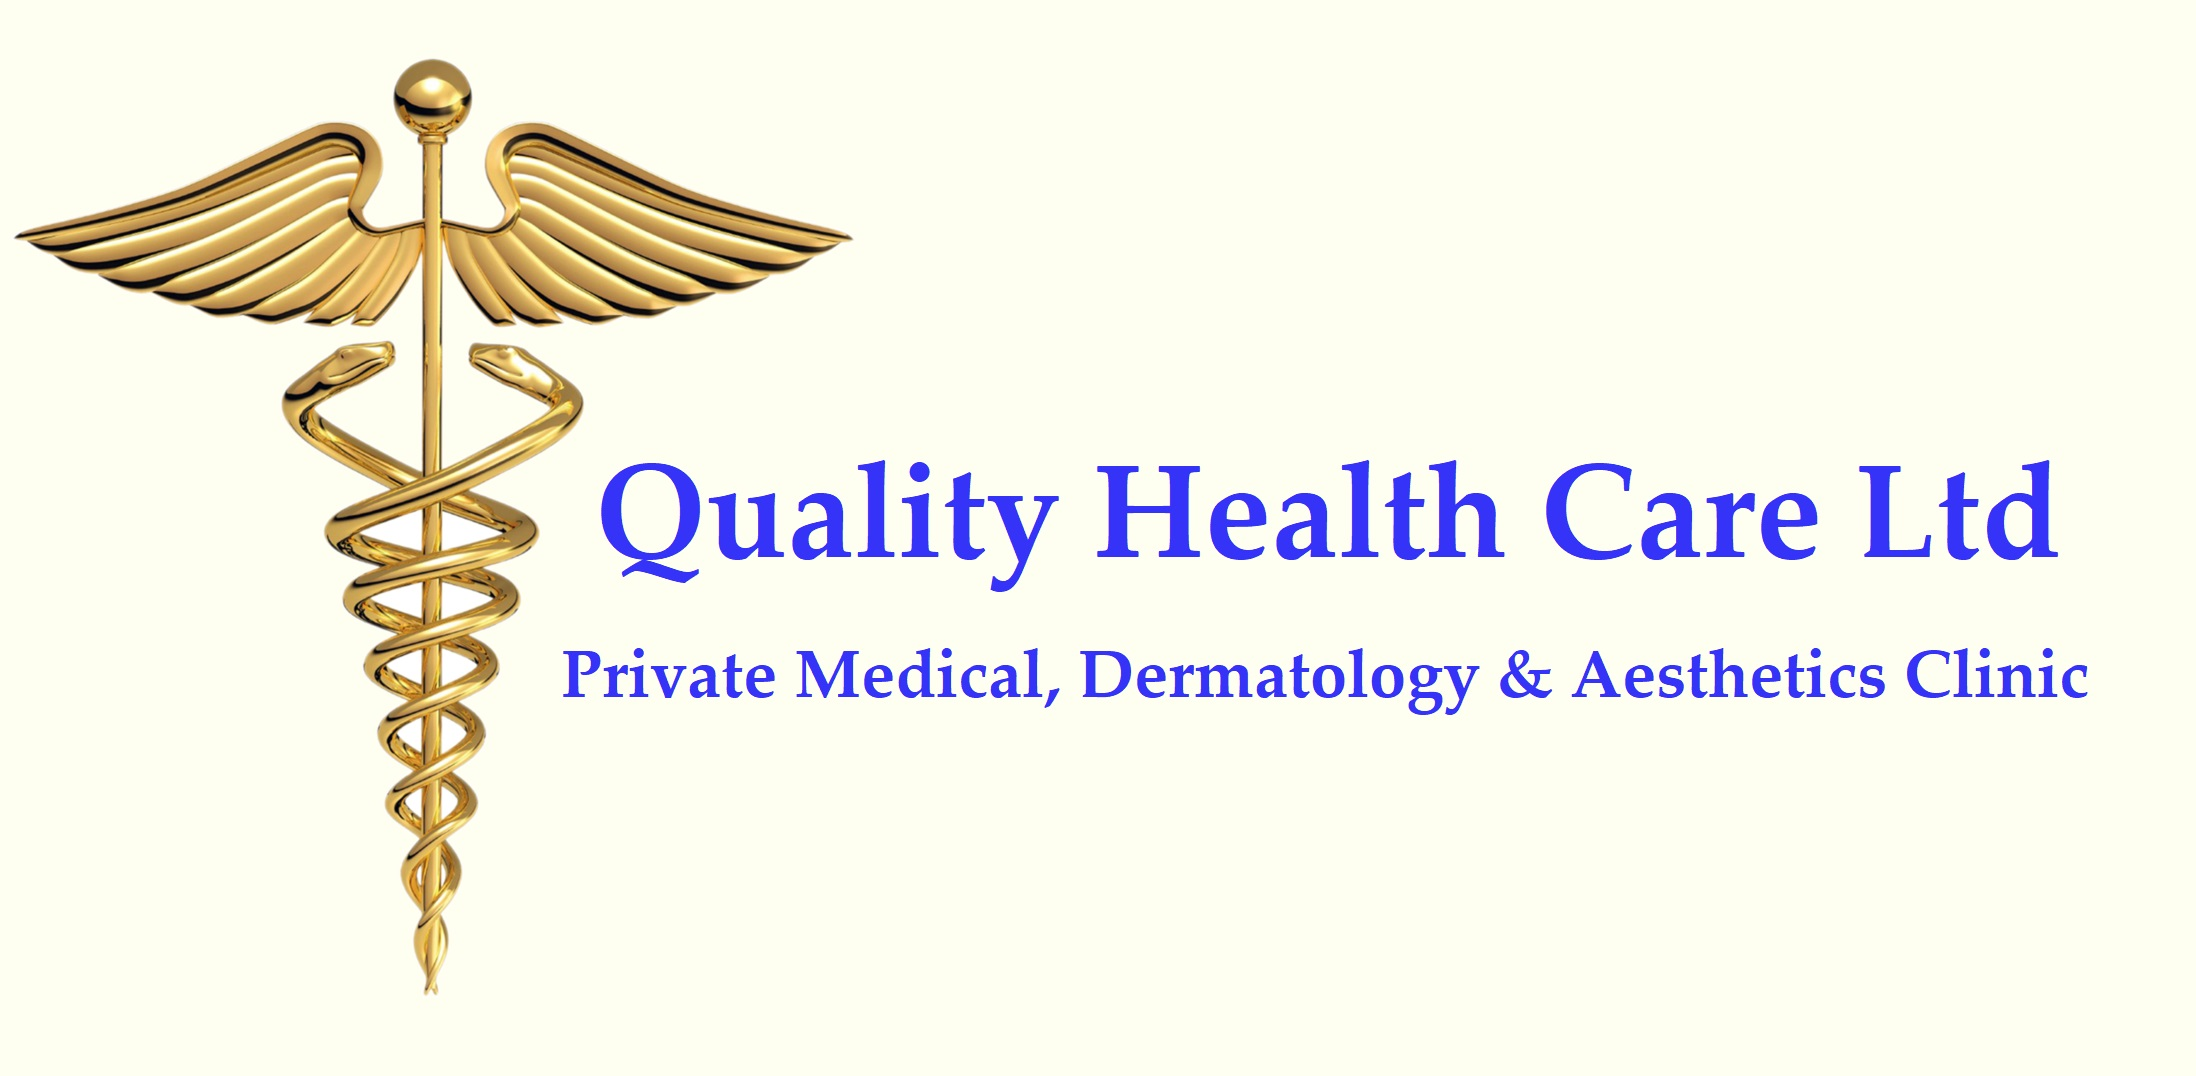 Quality Health Care Ltd